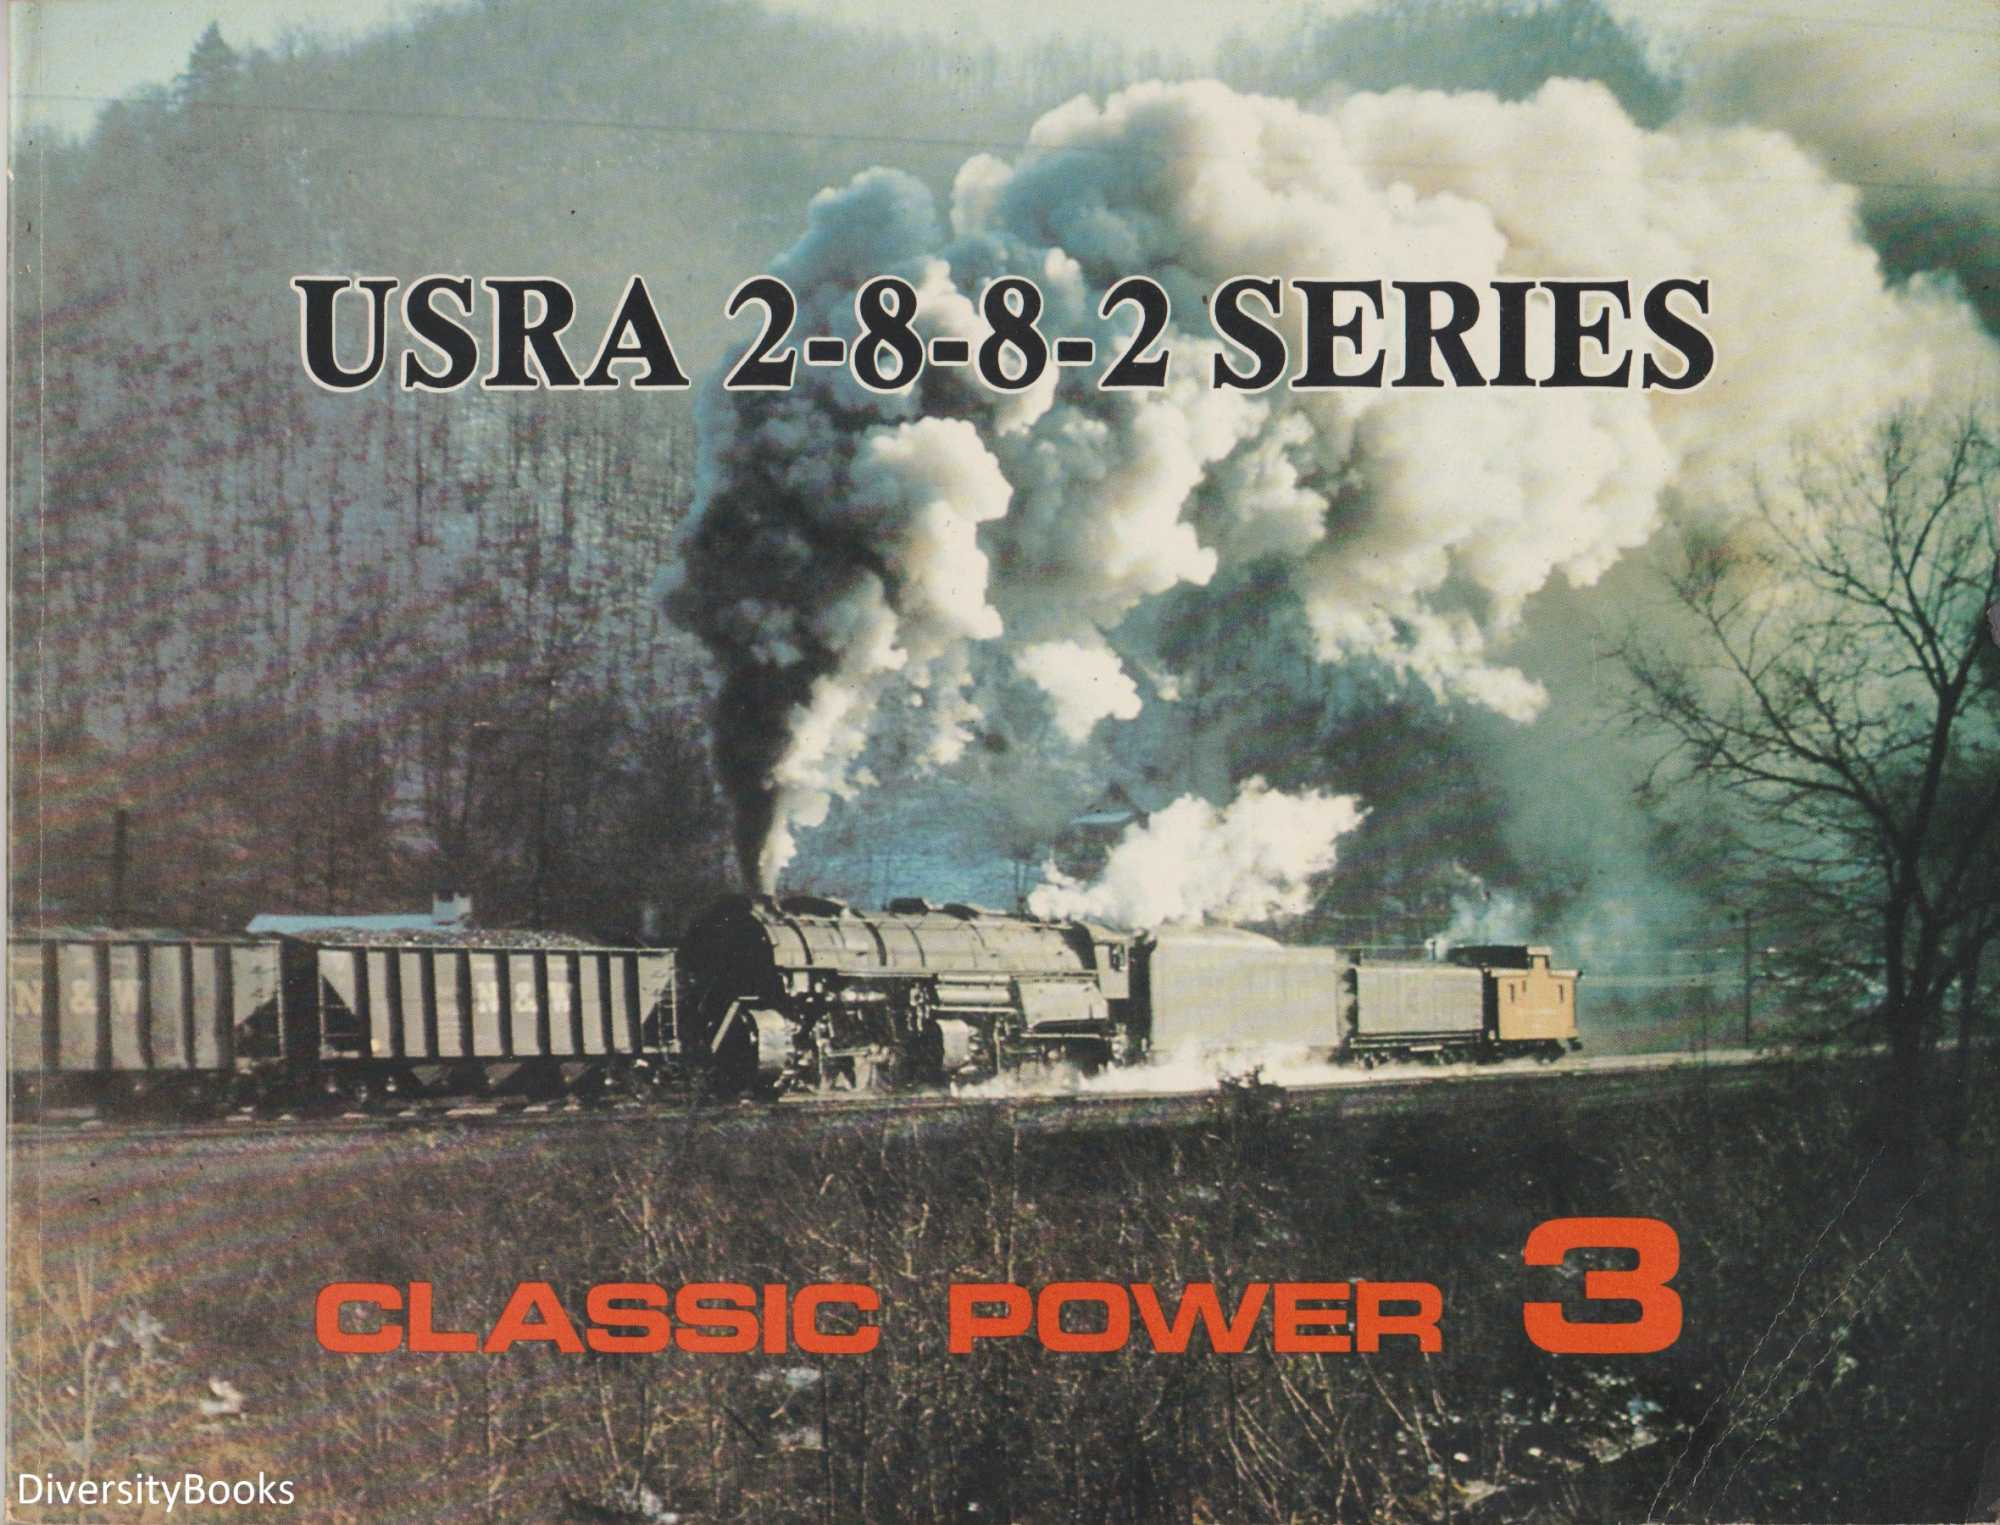 Image for USRA 2-8-8-2 SERIES: Classic Power 3